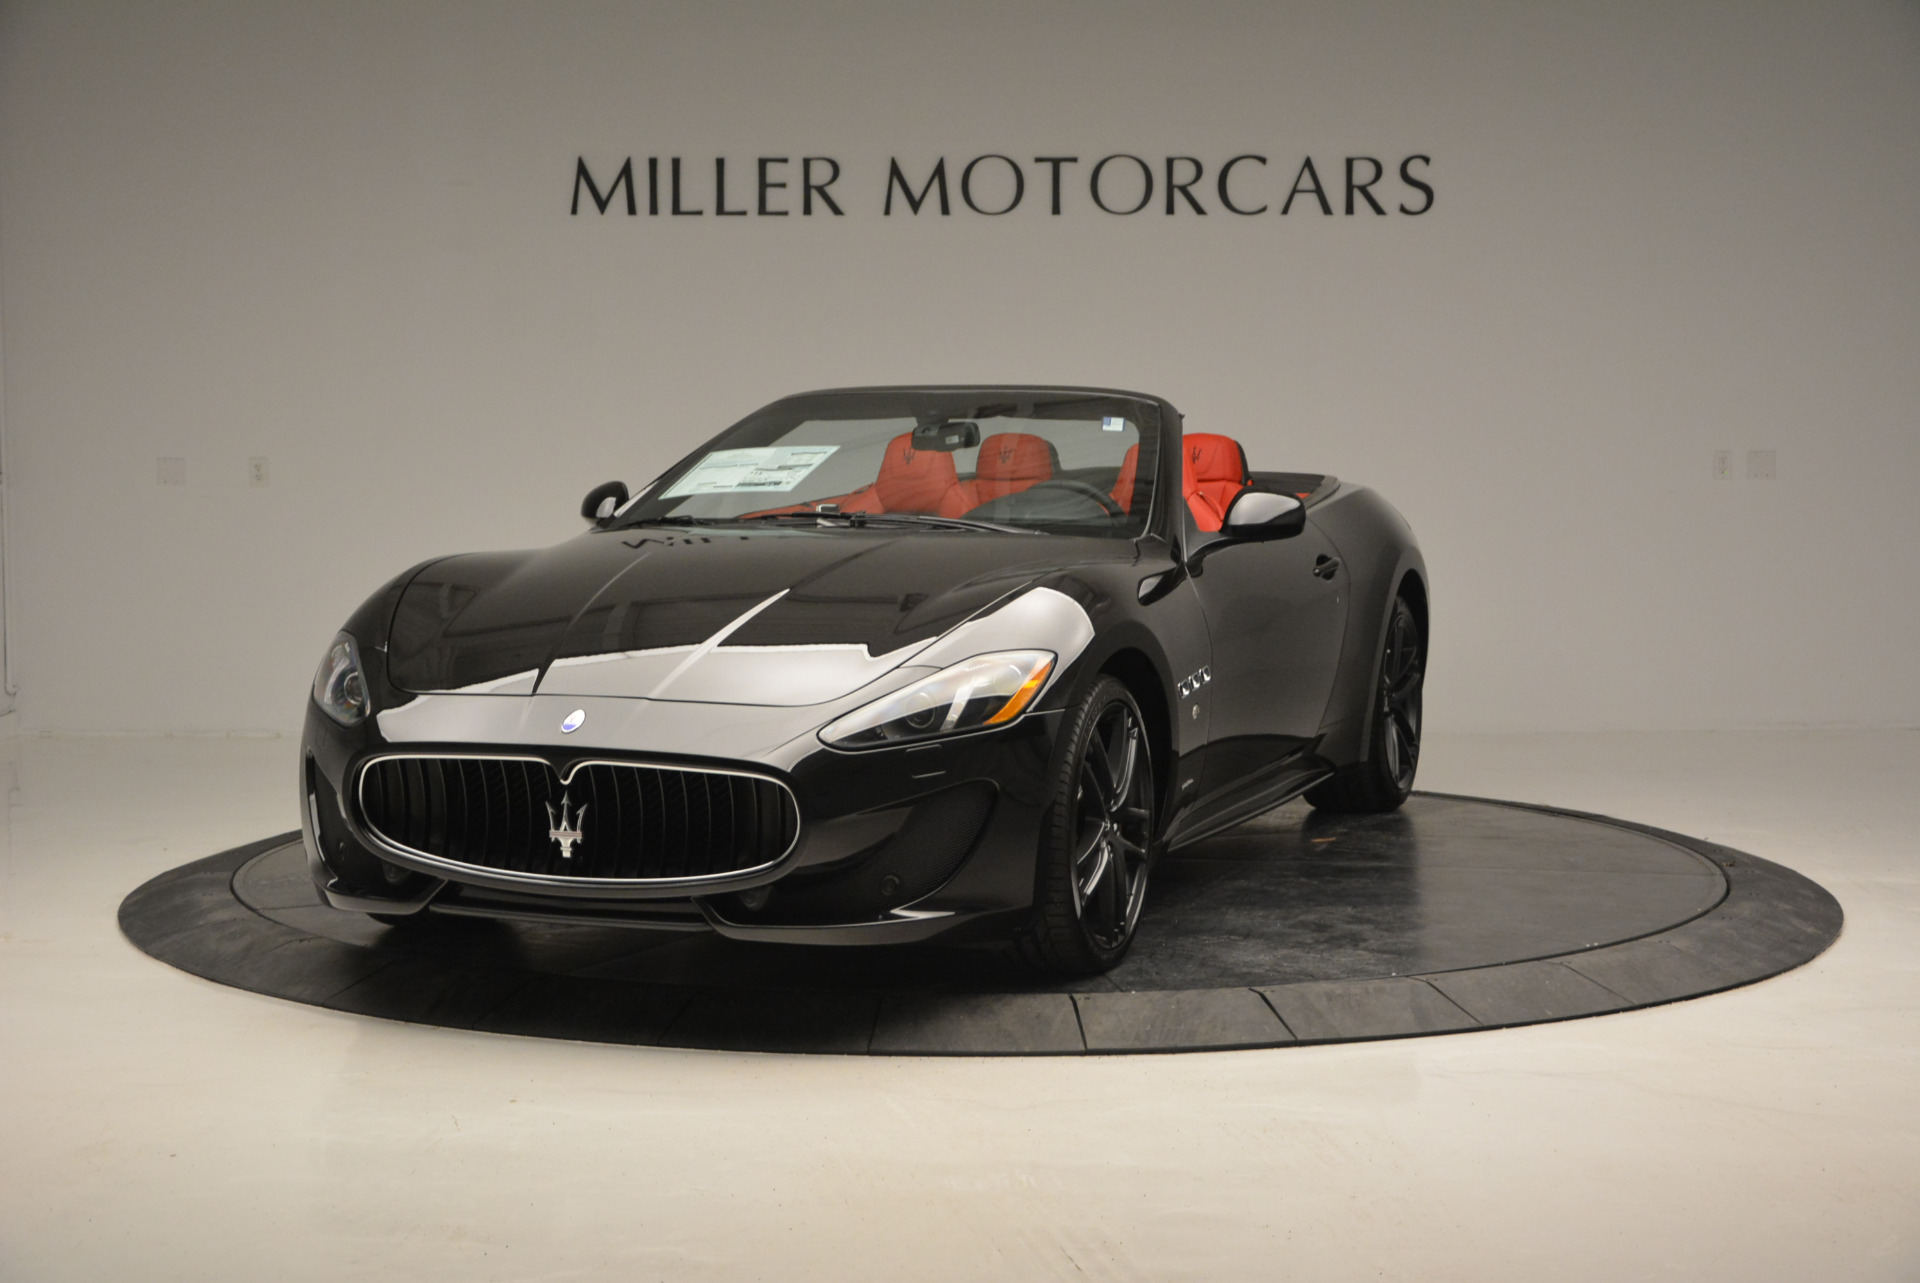 New 2017 Maserati GranTurismo Cab Sport For Sale In Greenwich, CT 687_main